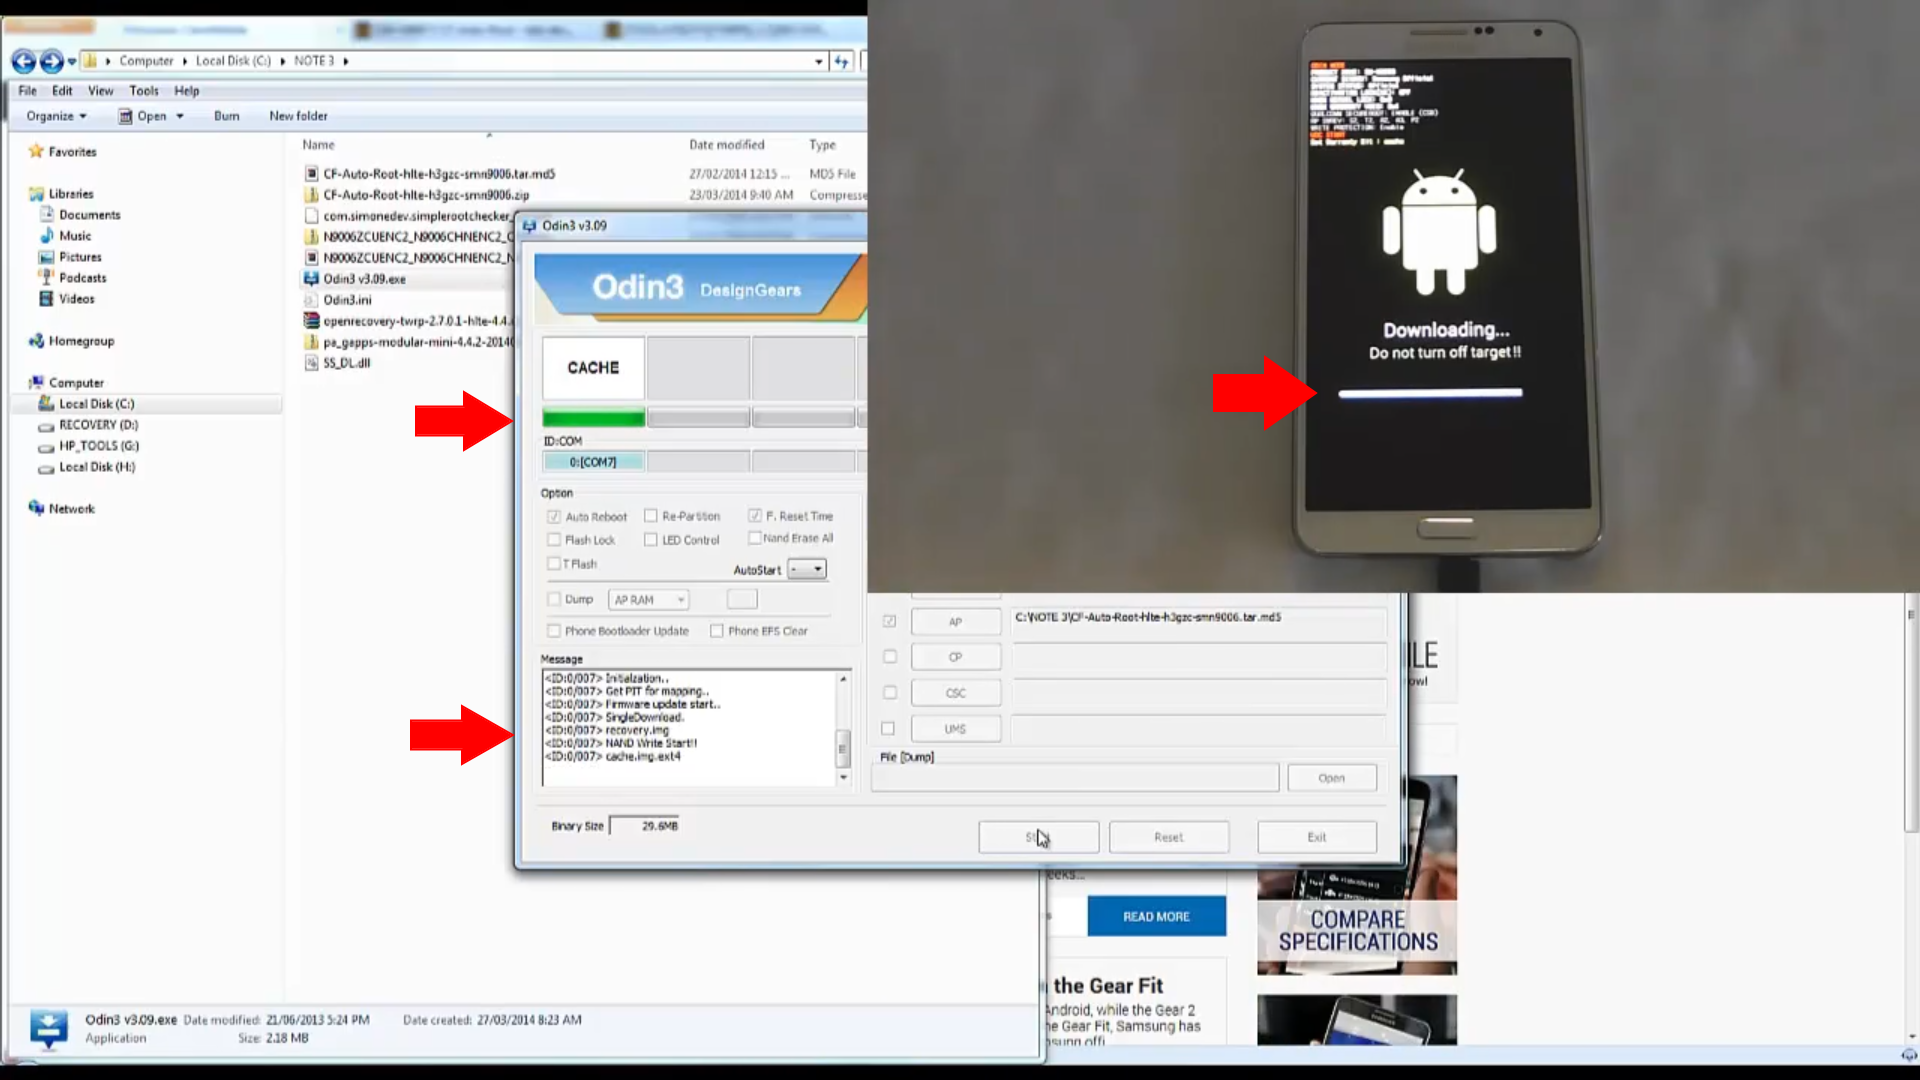 How to Root your Galaxy Note 3 running Lollipop 5 0 | LocsLikes